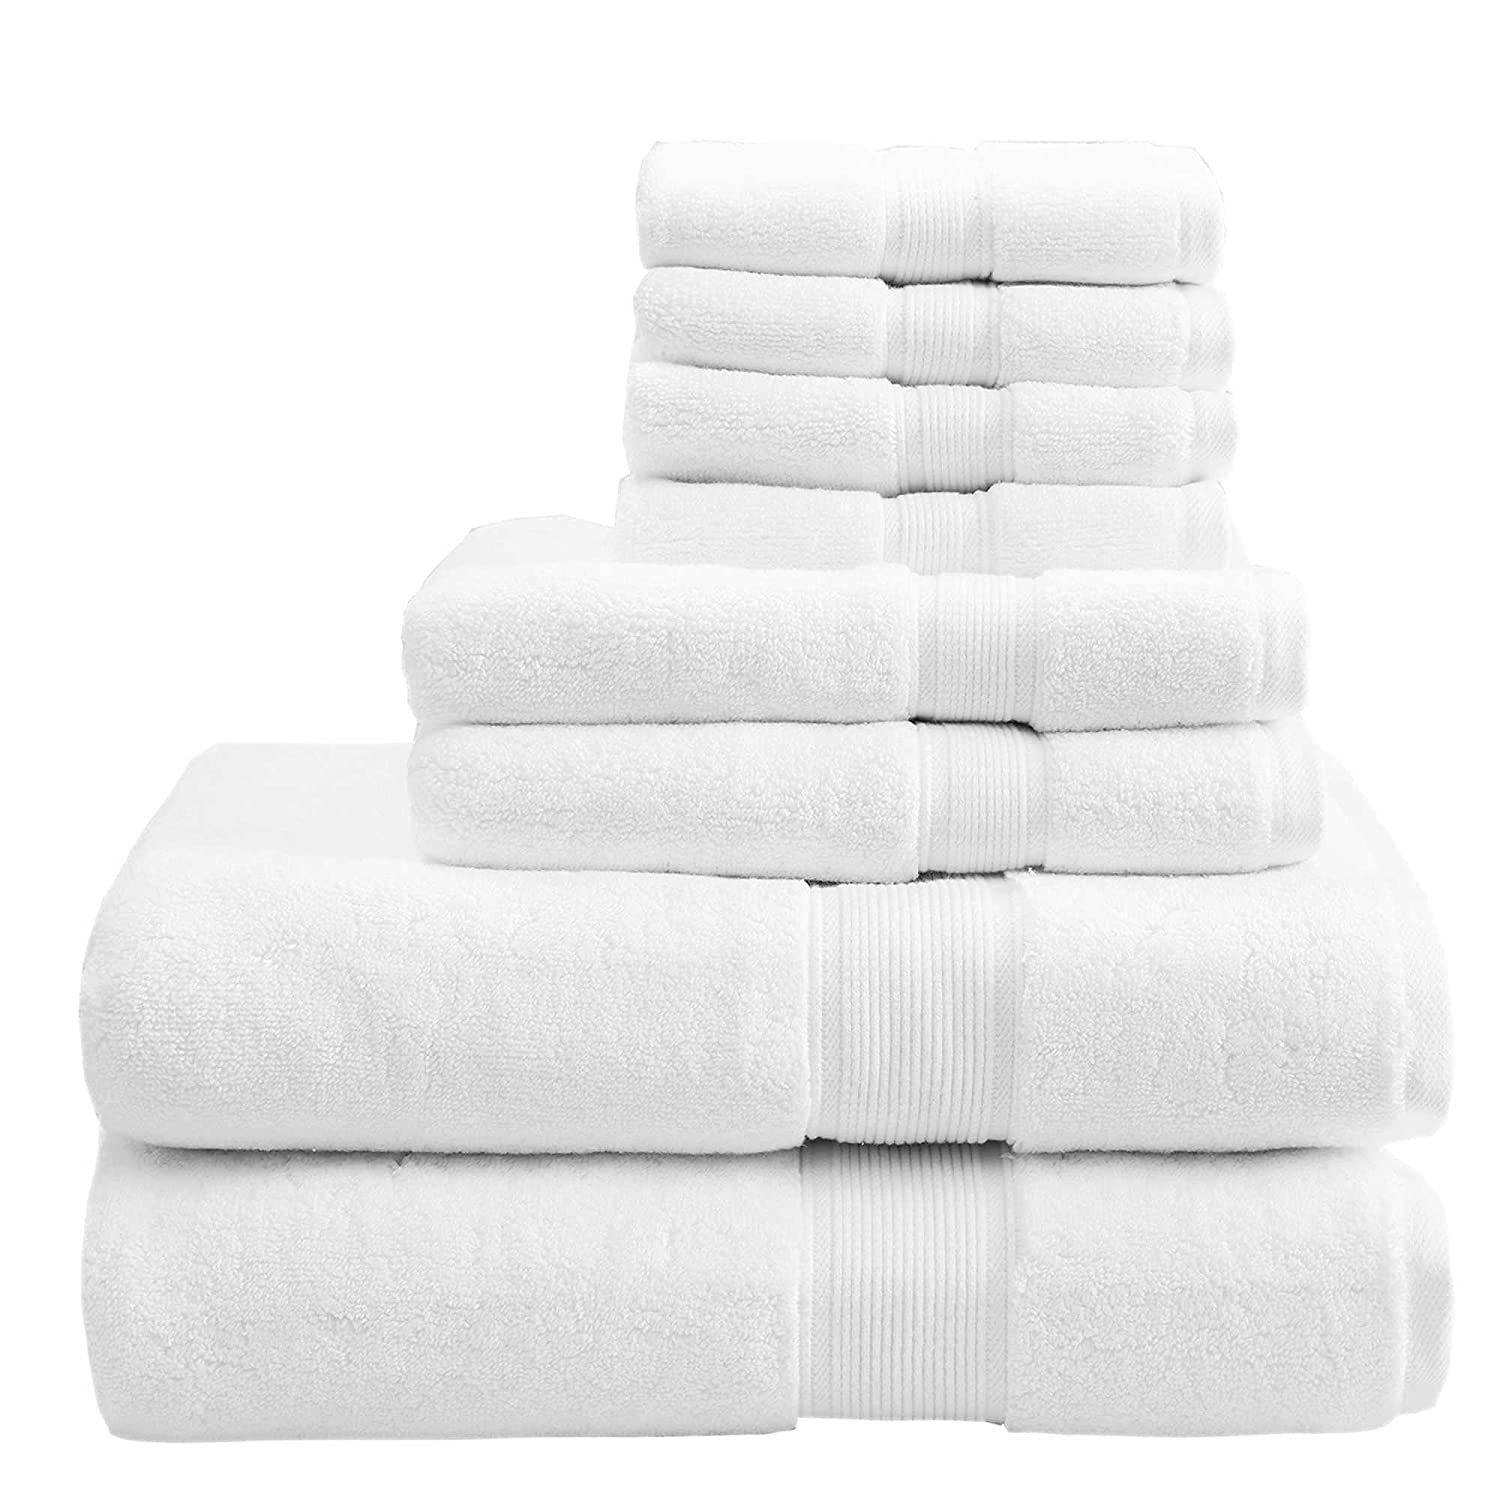 Created composed your FIVE STAR bath towel set 500 GSM Combed 100/% Cotton z/érotwist ORPHEEBS HOTEL SPA Supreme Premium Luxury Line WITHE 5 bathmat 50x80 cm // 20x32 Microcotton Various sizes